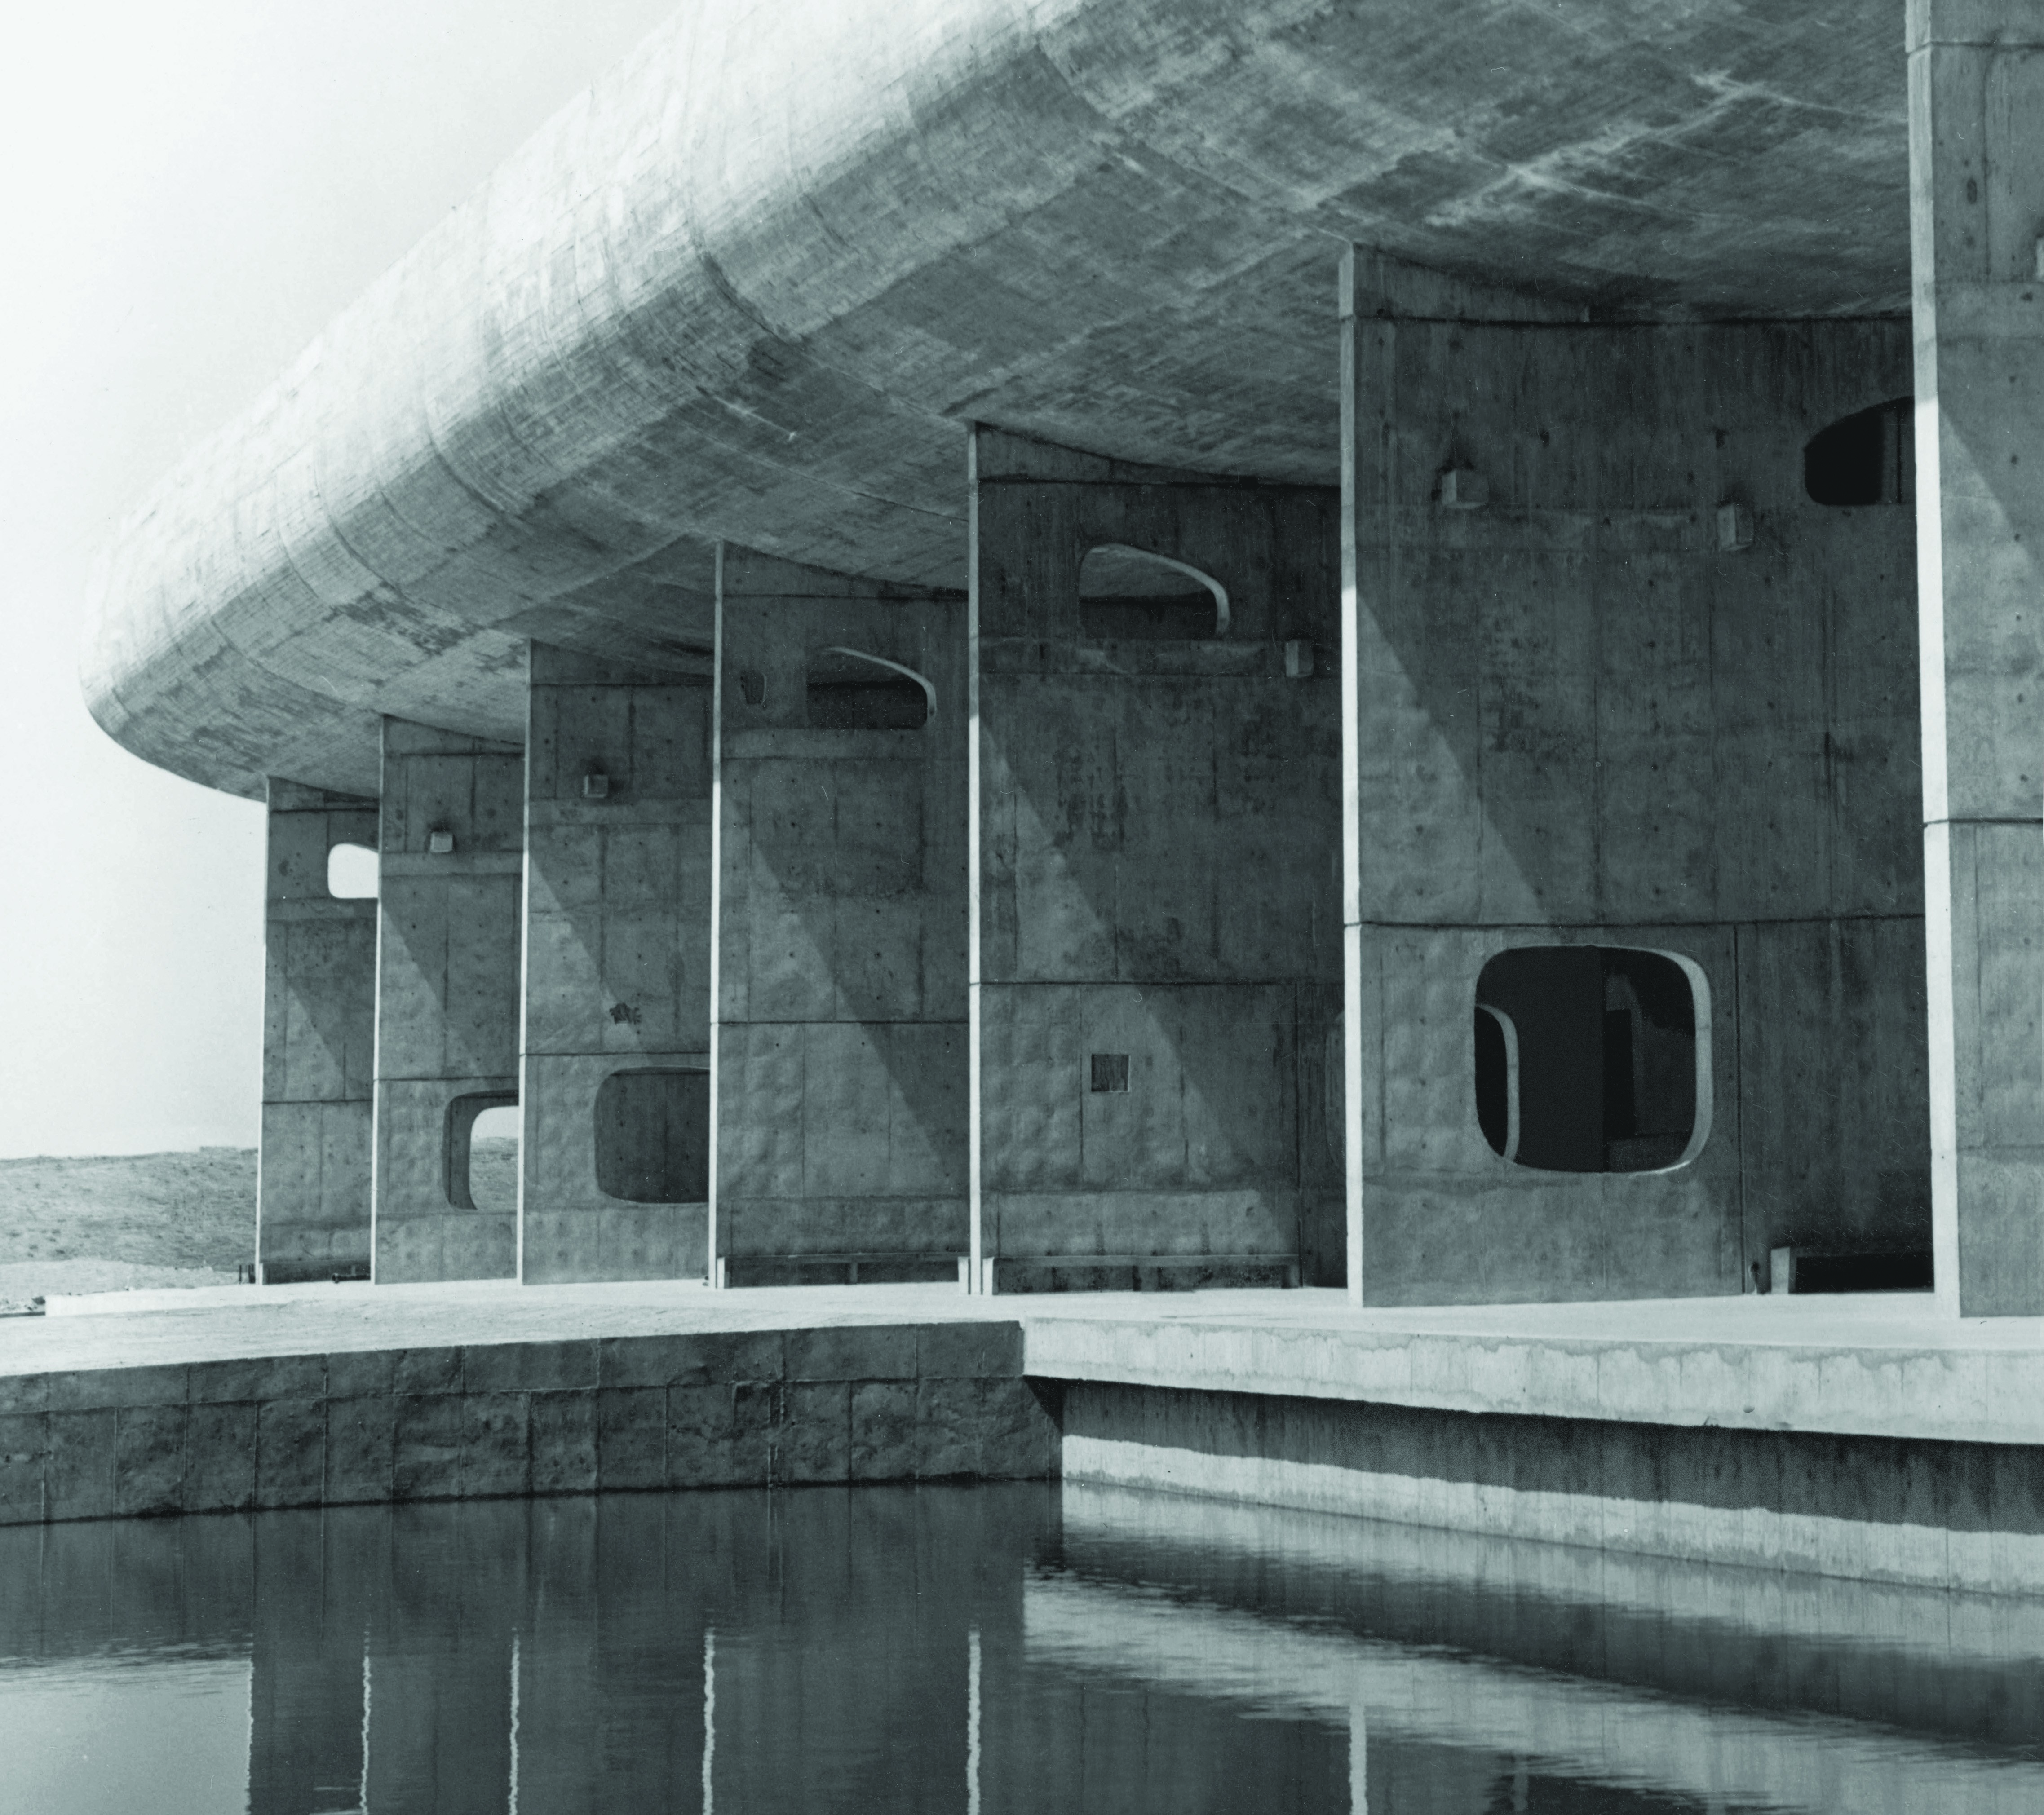 Assembly Building, Chandigarh, India (Le Corbusier, 1962)